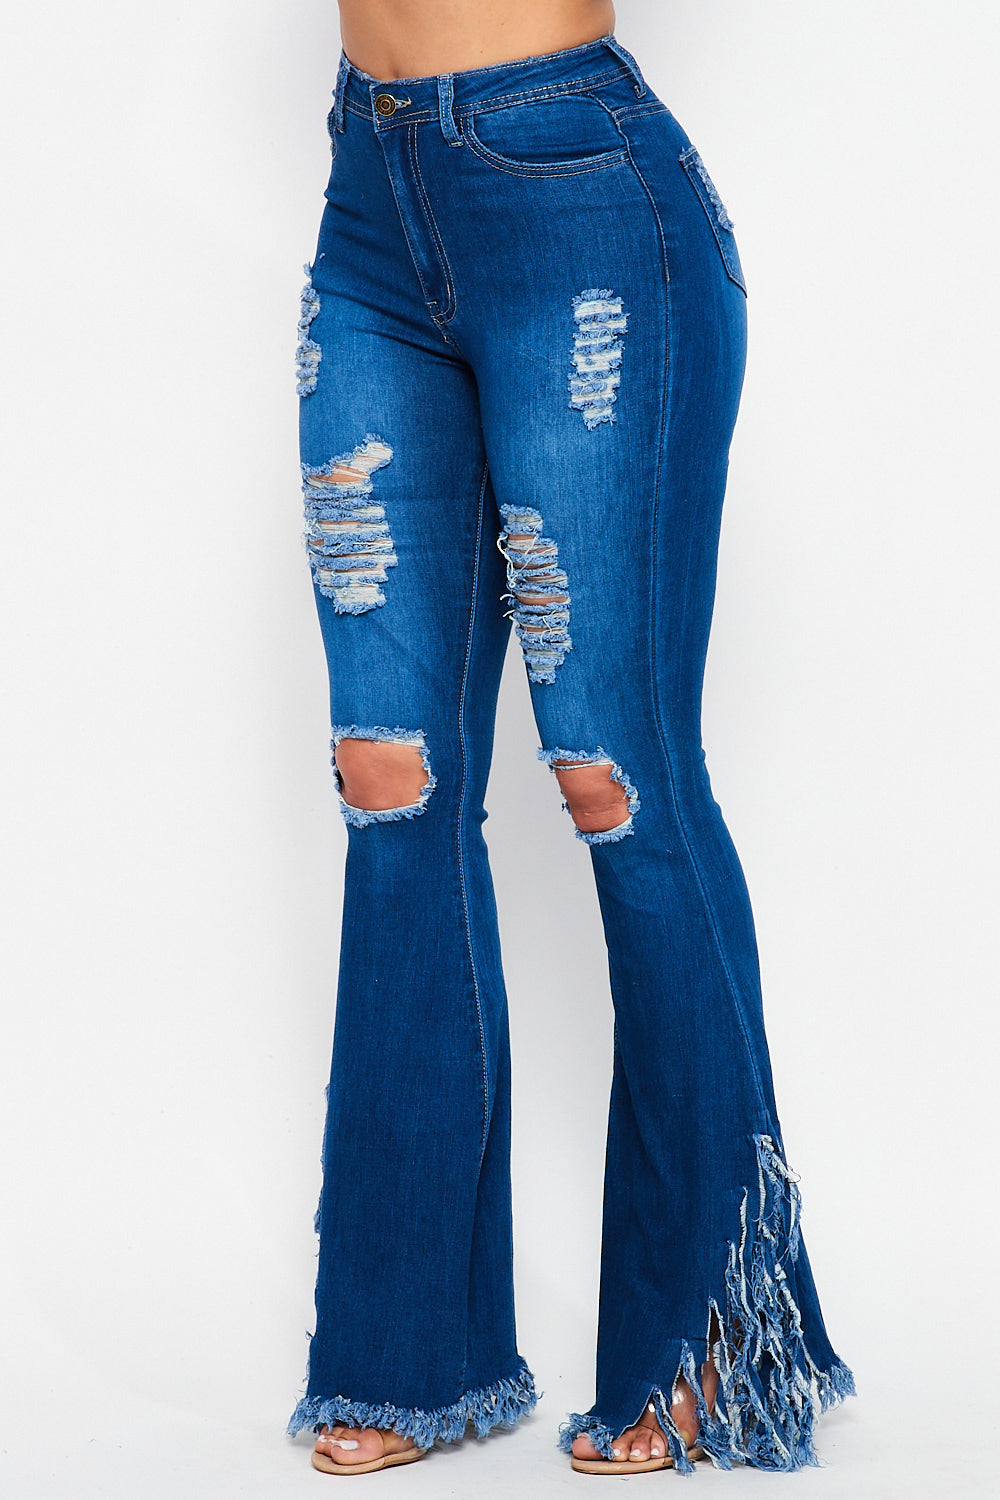 High Waist Front Distressed Side Flare Fringe Jeans in Medium Denim - Fashion House USA